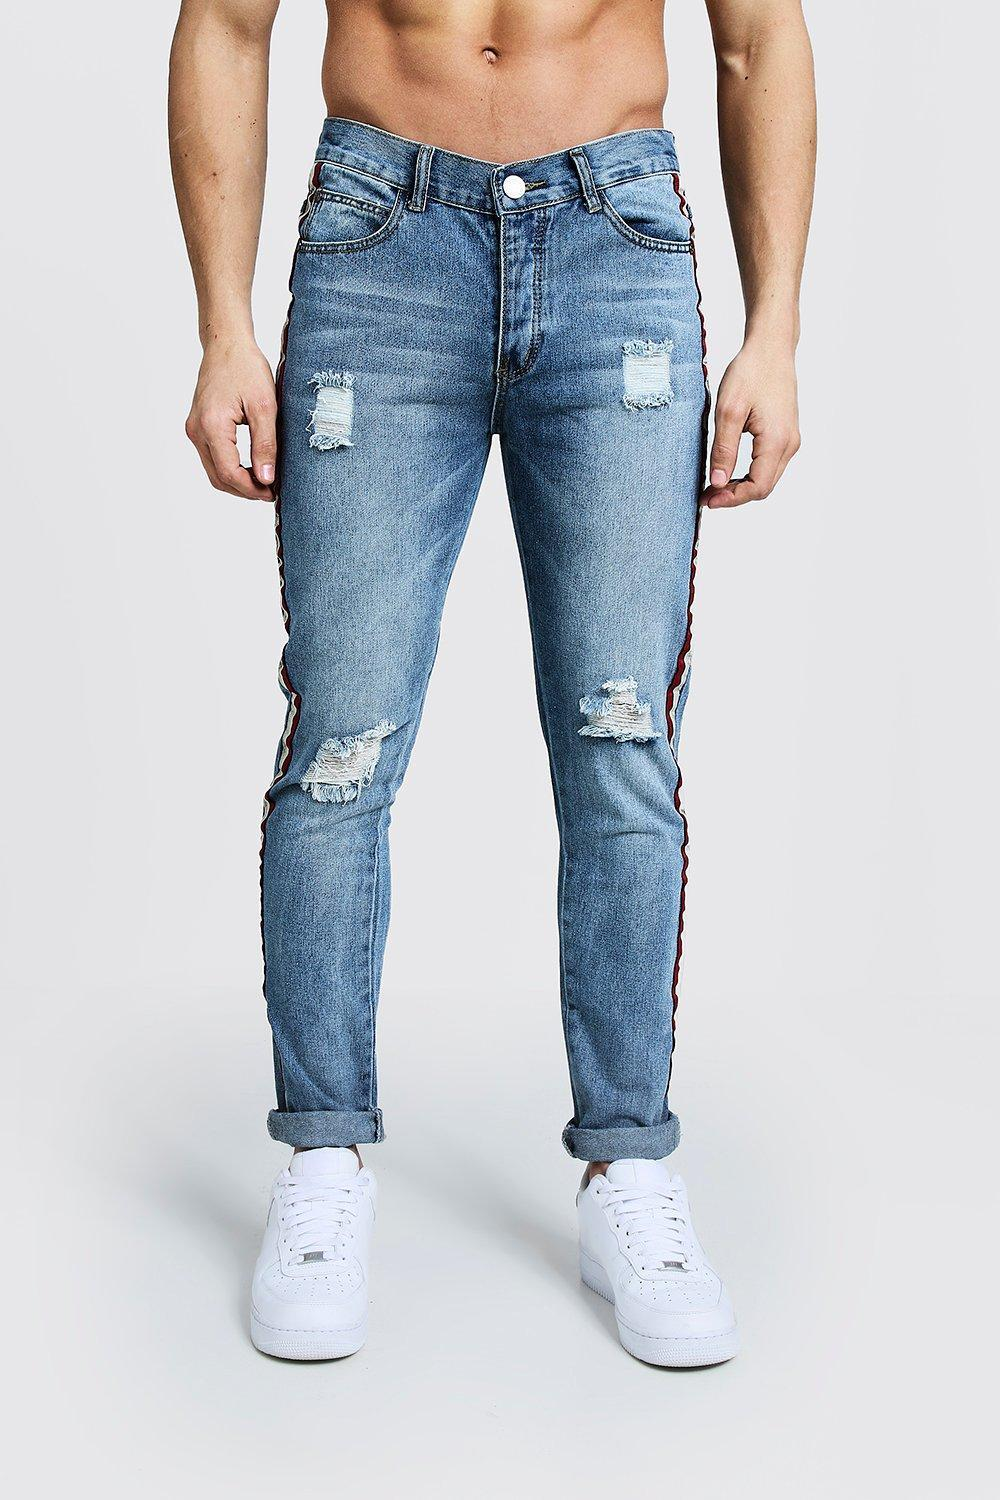 d4615016b6ca6 BoohooMAN Skinny Fit Distressed Side Tape Jeans in Blue for Men ...